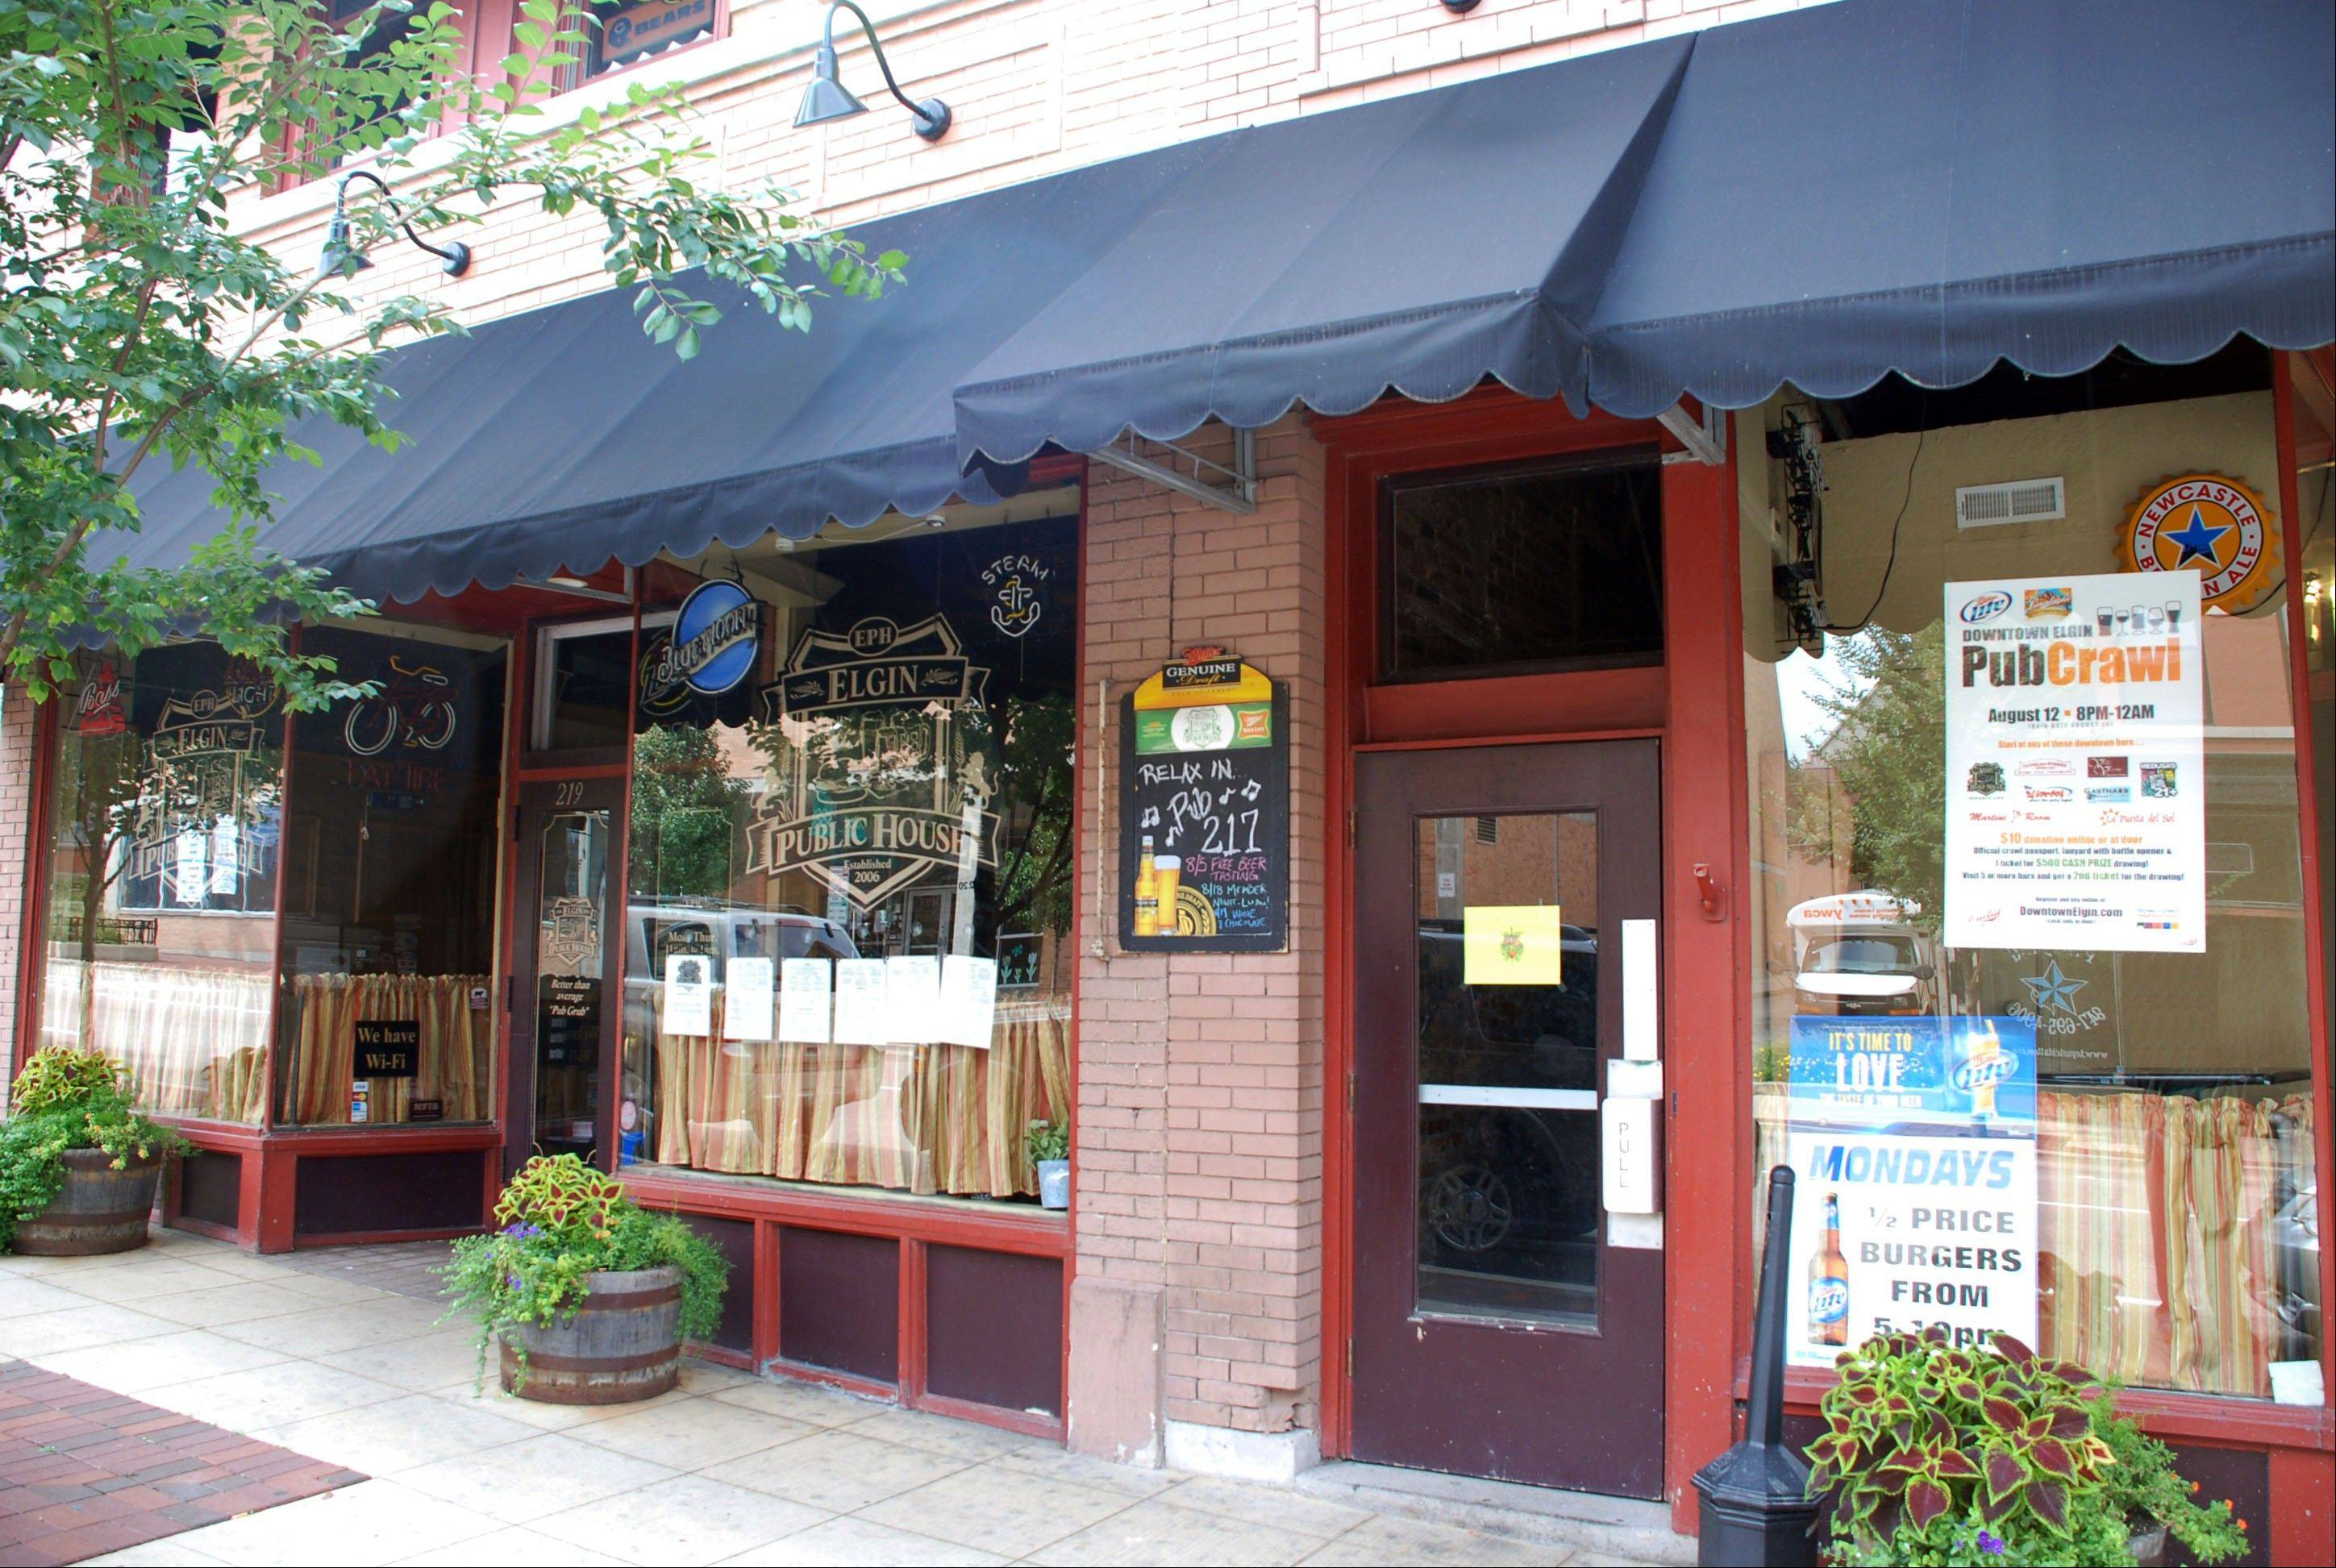 Elgin Public House, 219 E. Chicago St., will be one of the stops on Friday's Downtown Elgin Pub Crawl.